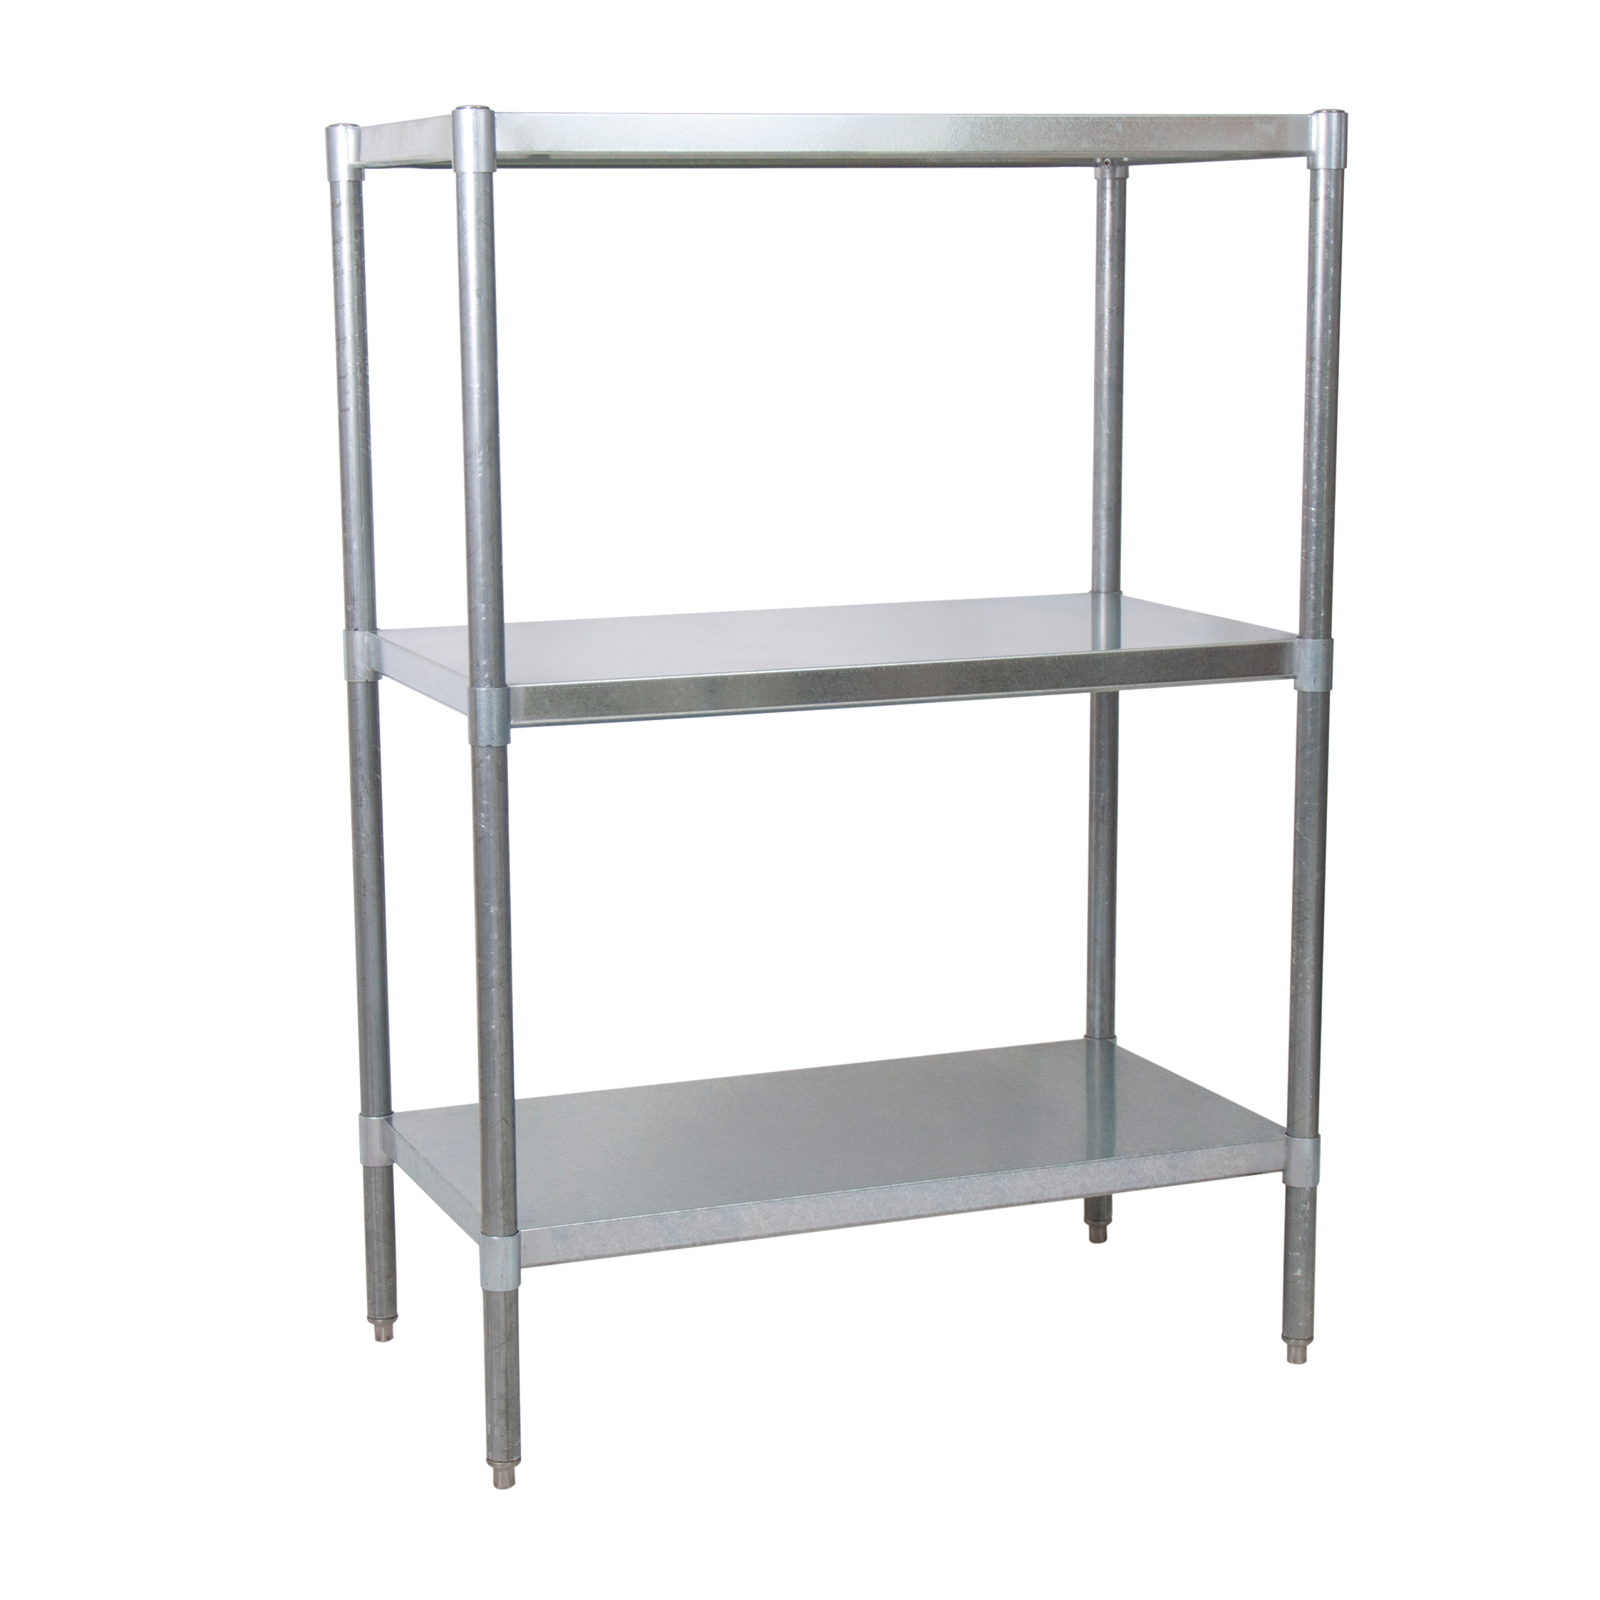 BK Resources SSU5-4324 shelving unit, solid flat